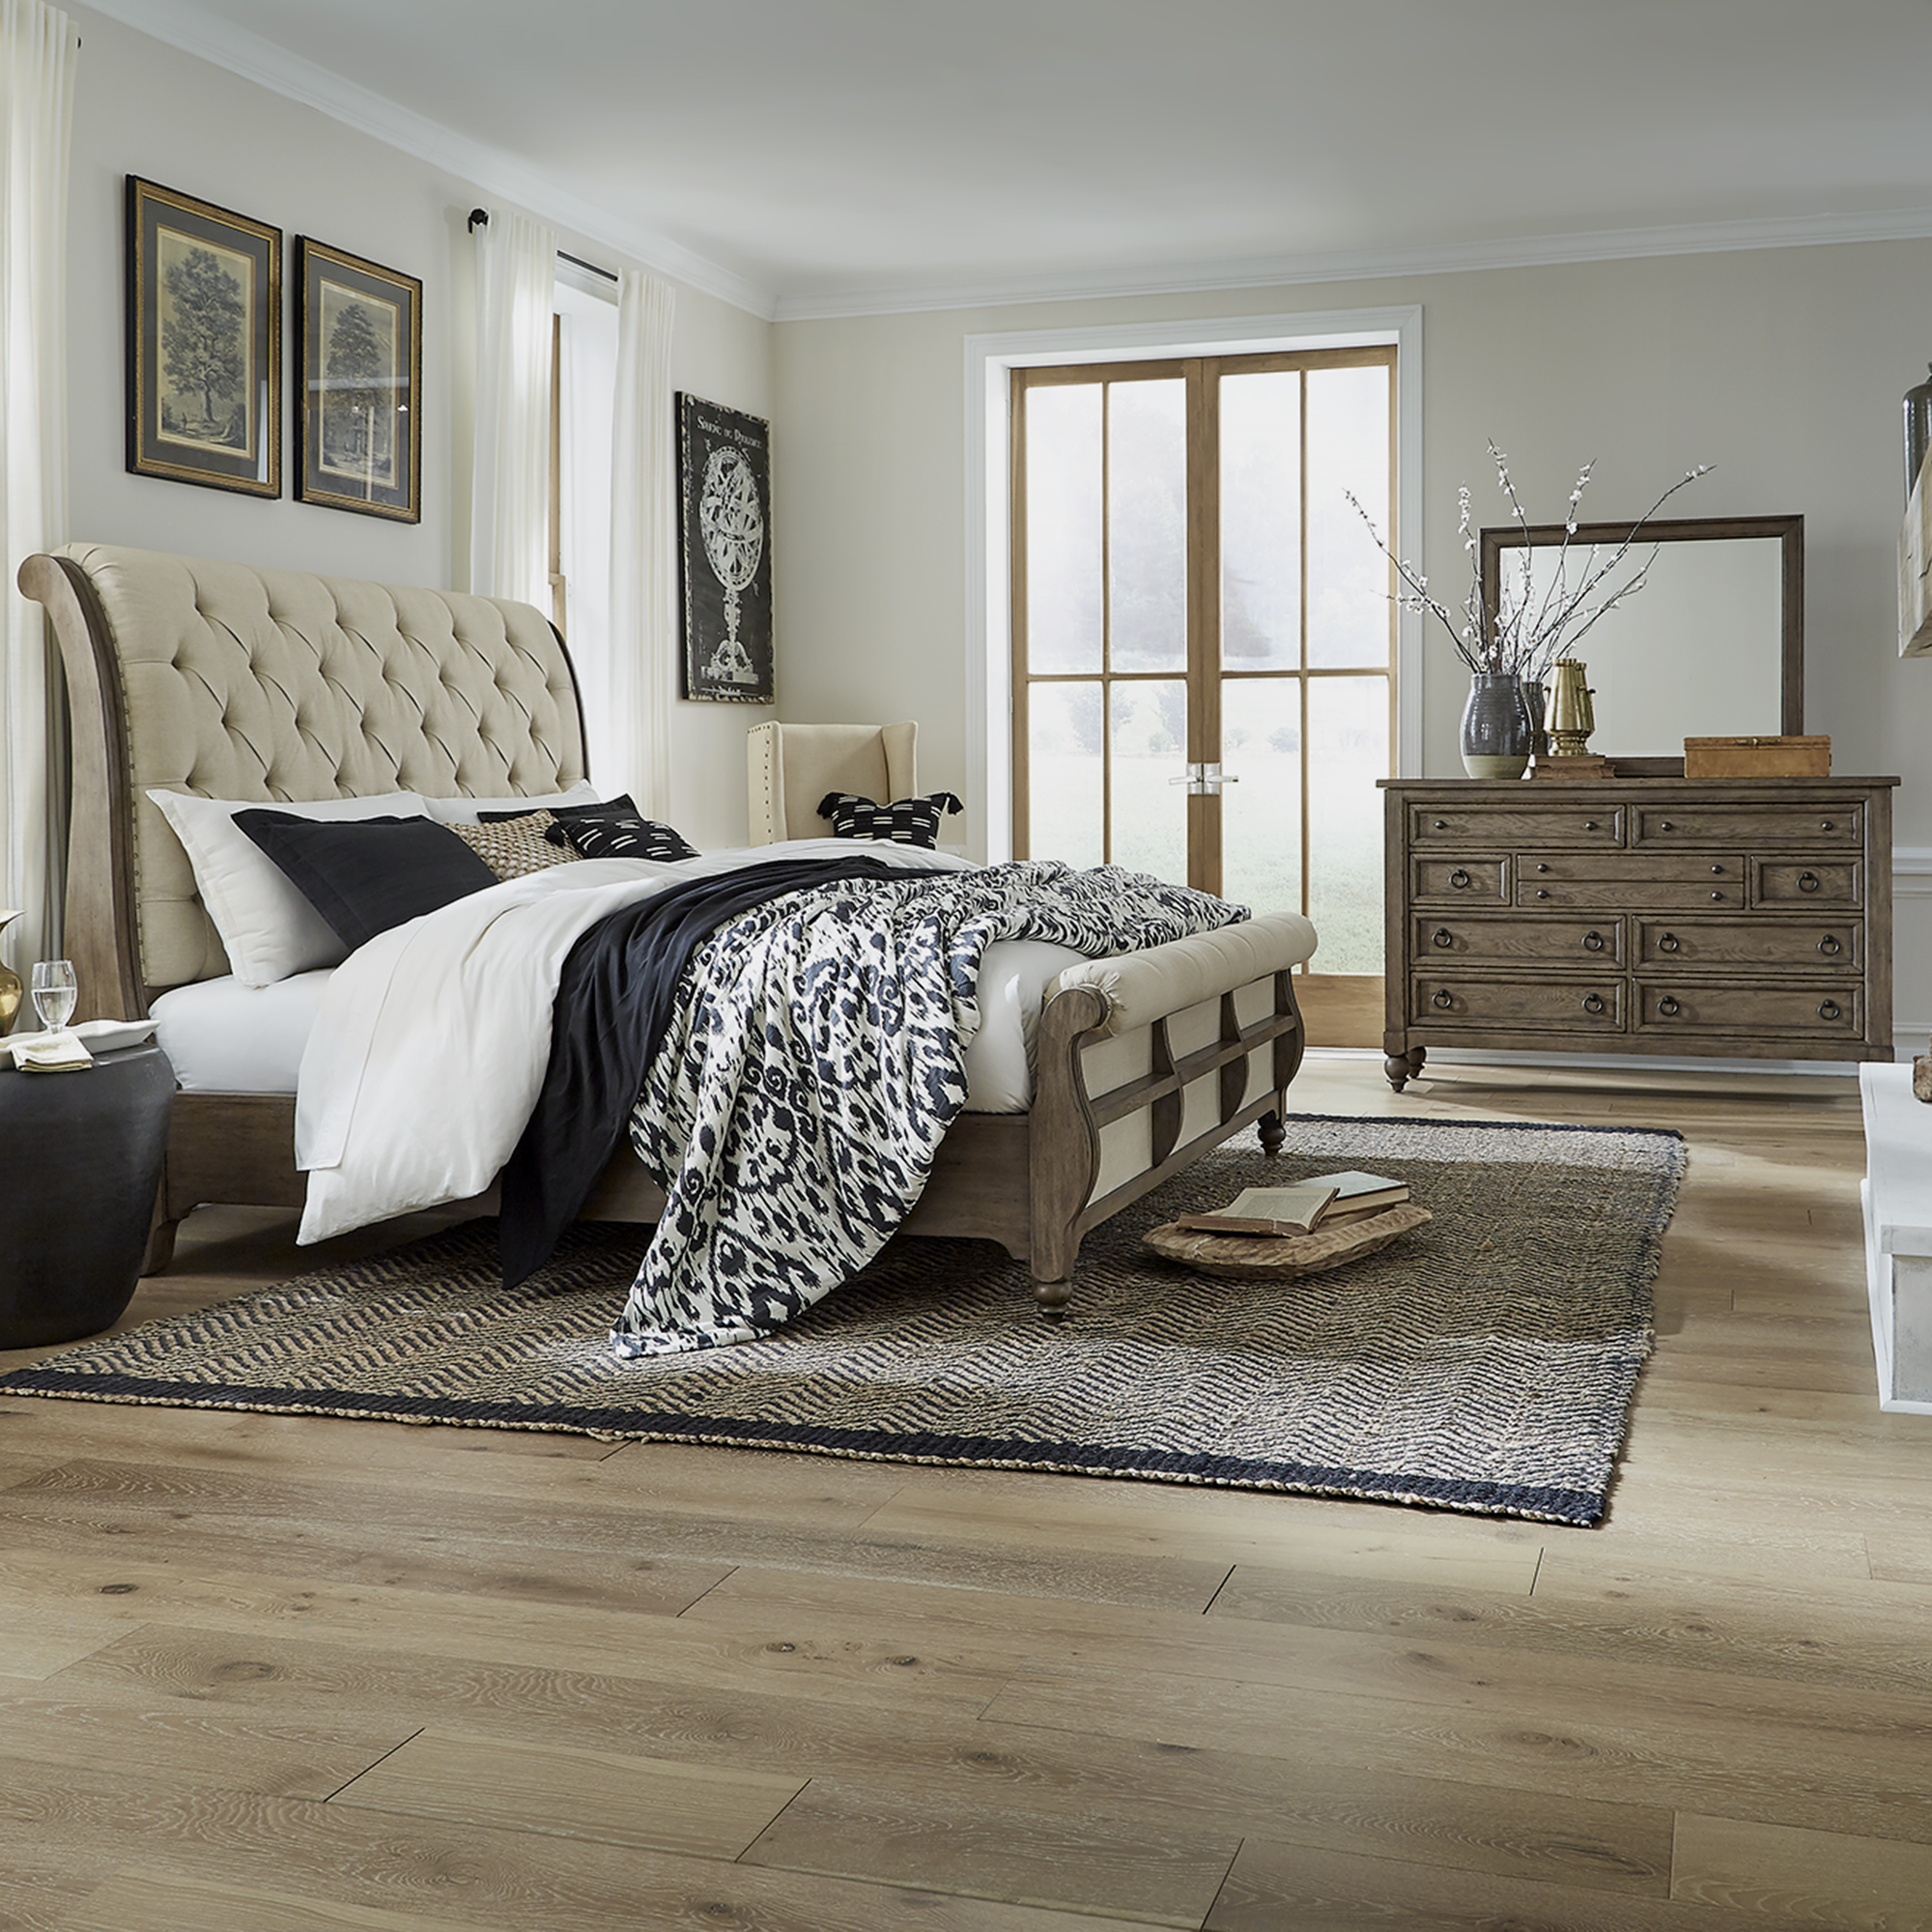 Americana Farmhouse Queen Sleigh Bedroom Group by Liberty Furniture at Godby Home Furnishings